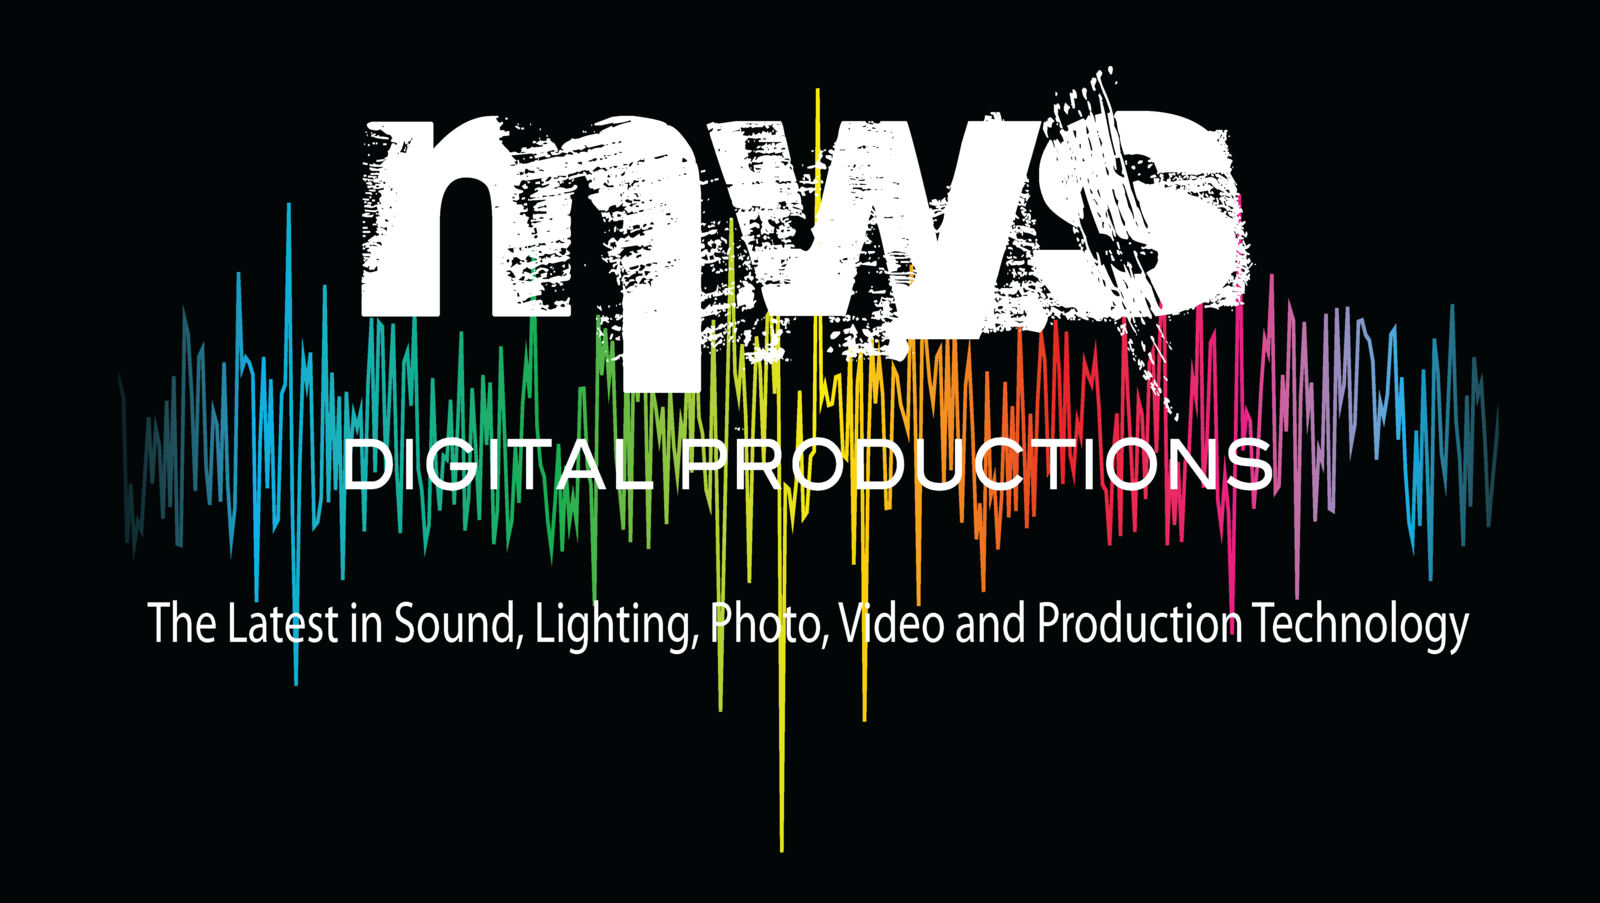 MWS Digital Productions